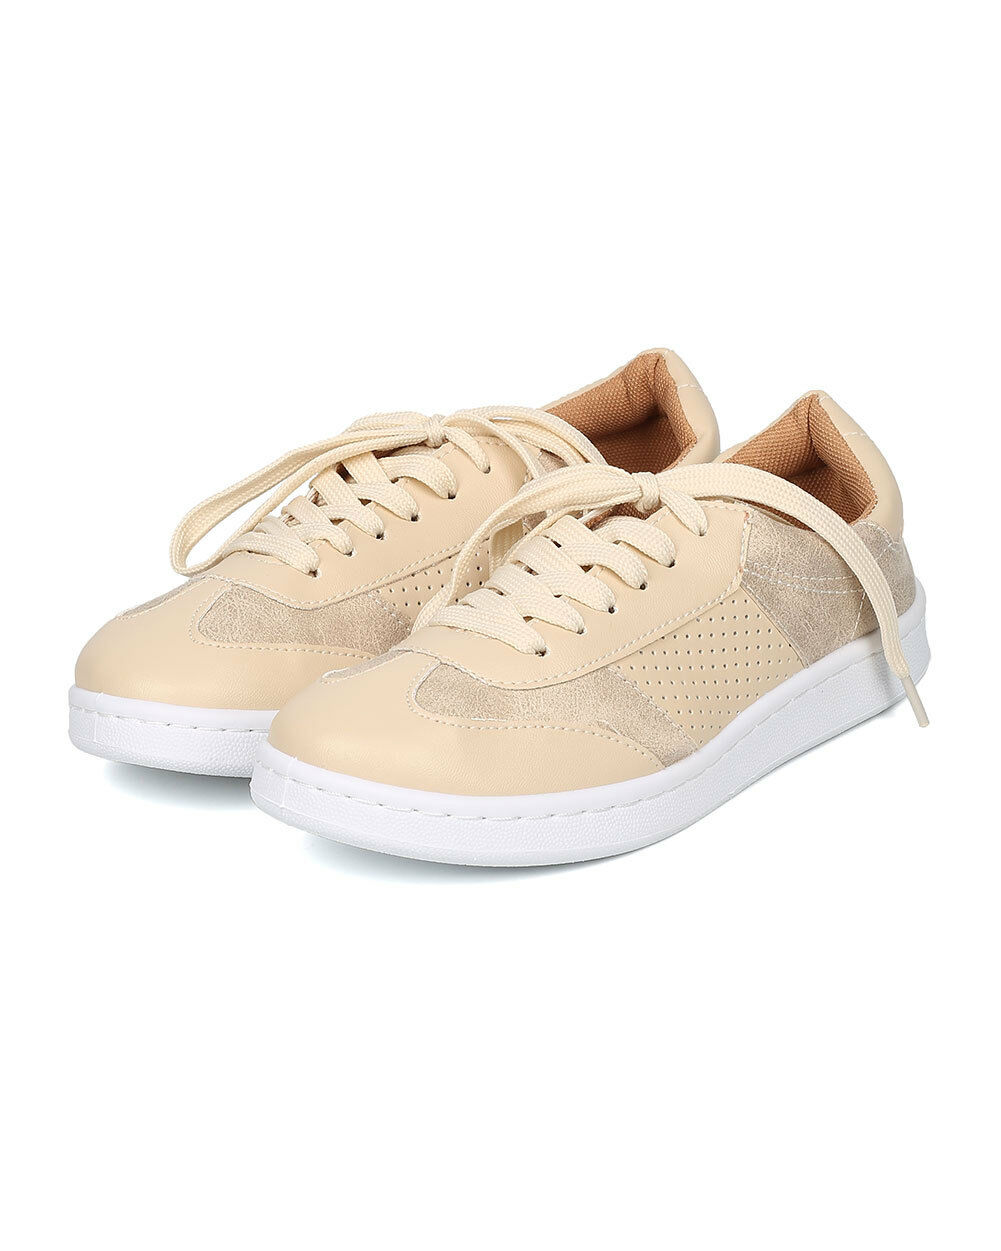 New Women Qupid Mentor-04 Leatherette Low Top Lace Up Sneaker